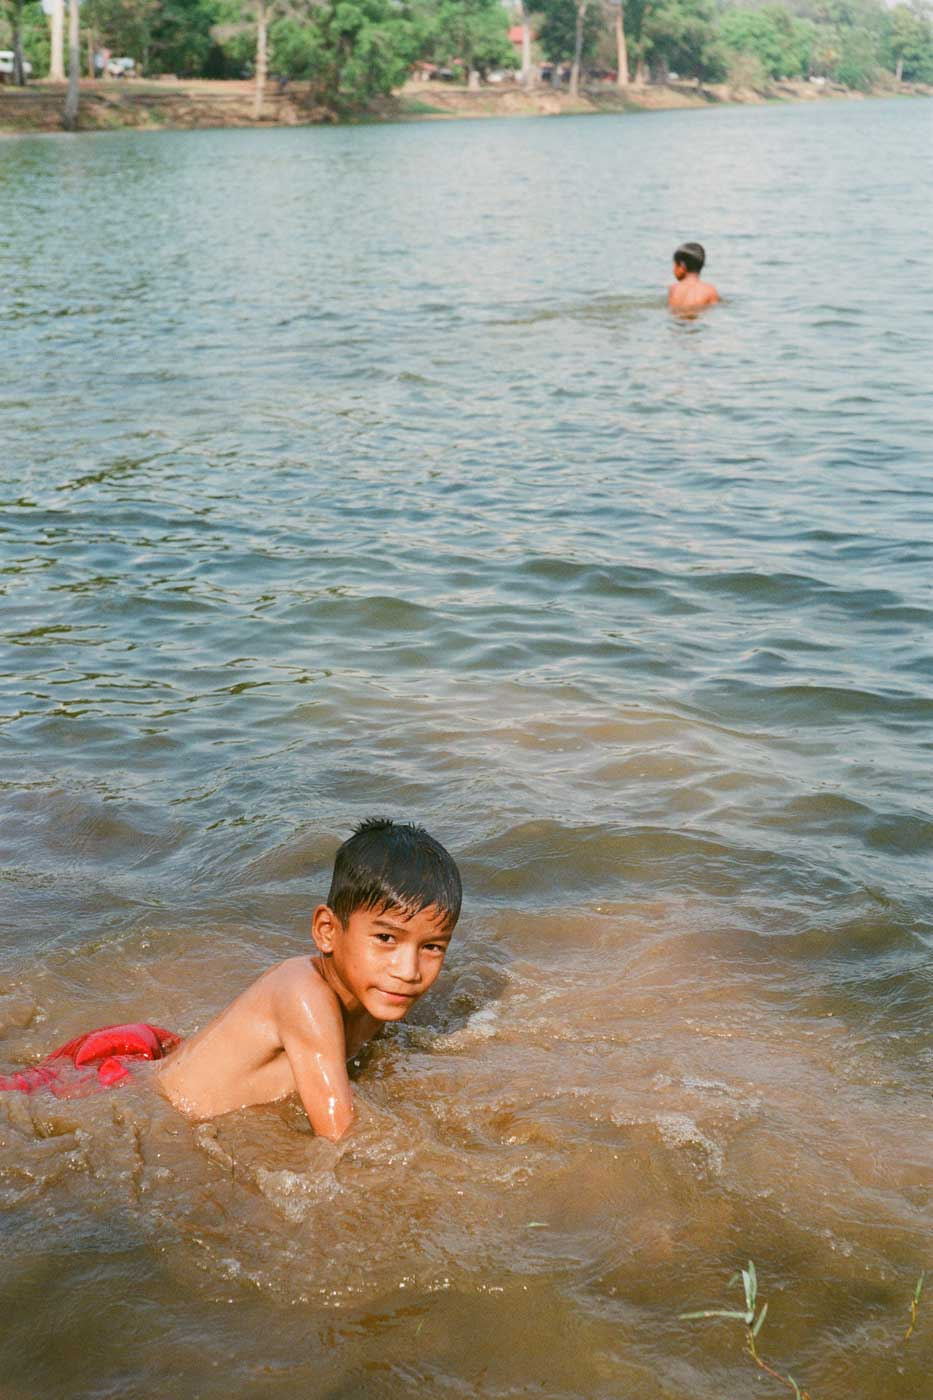 Leica-Summicron-50mm-50-f2-Rigid-Type-2-II-lens-review-fujifilm-Superia-premium-400-cambodia-kids-swimming-lens-performance-under-sun